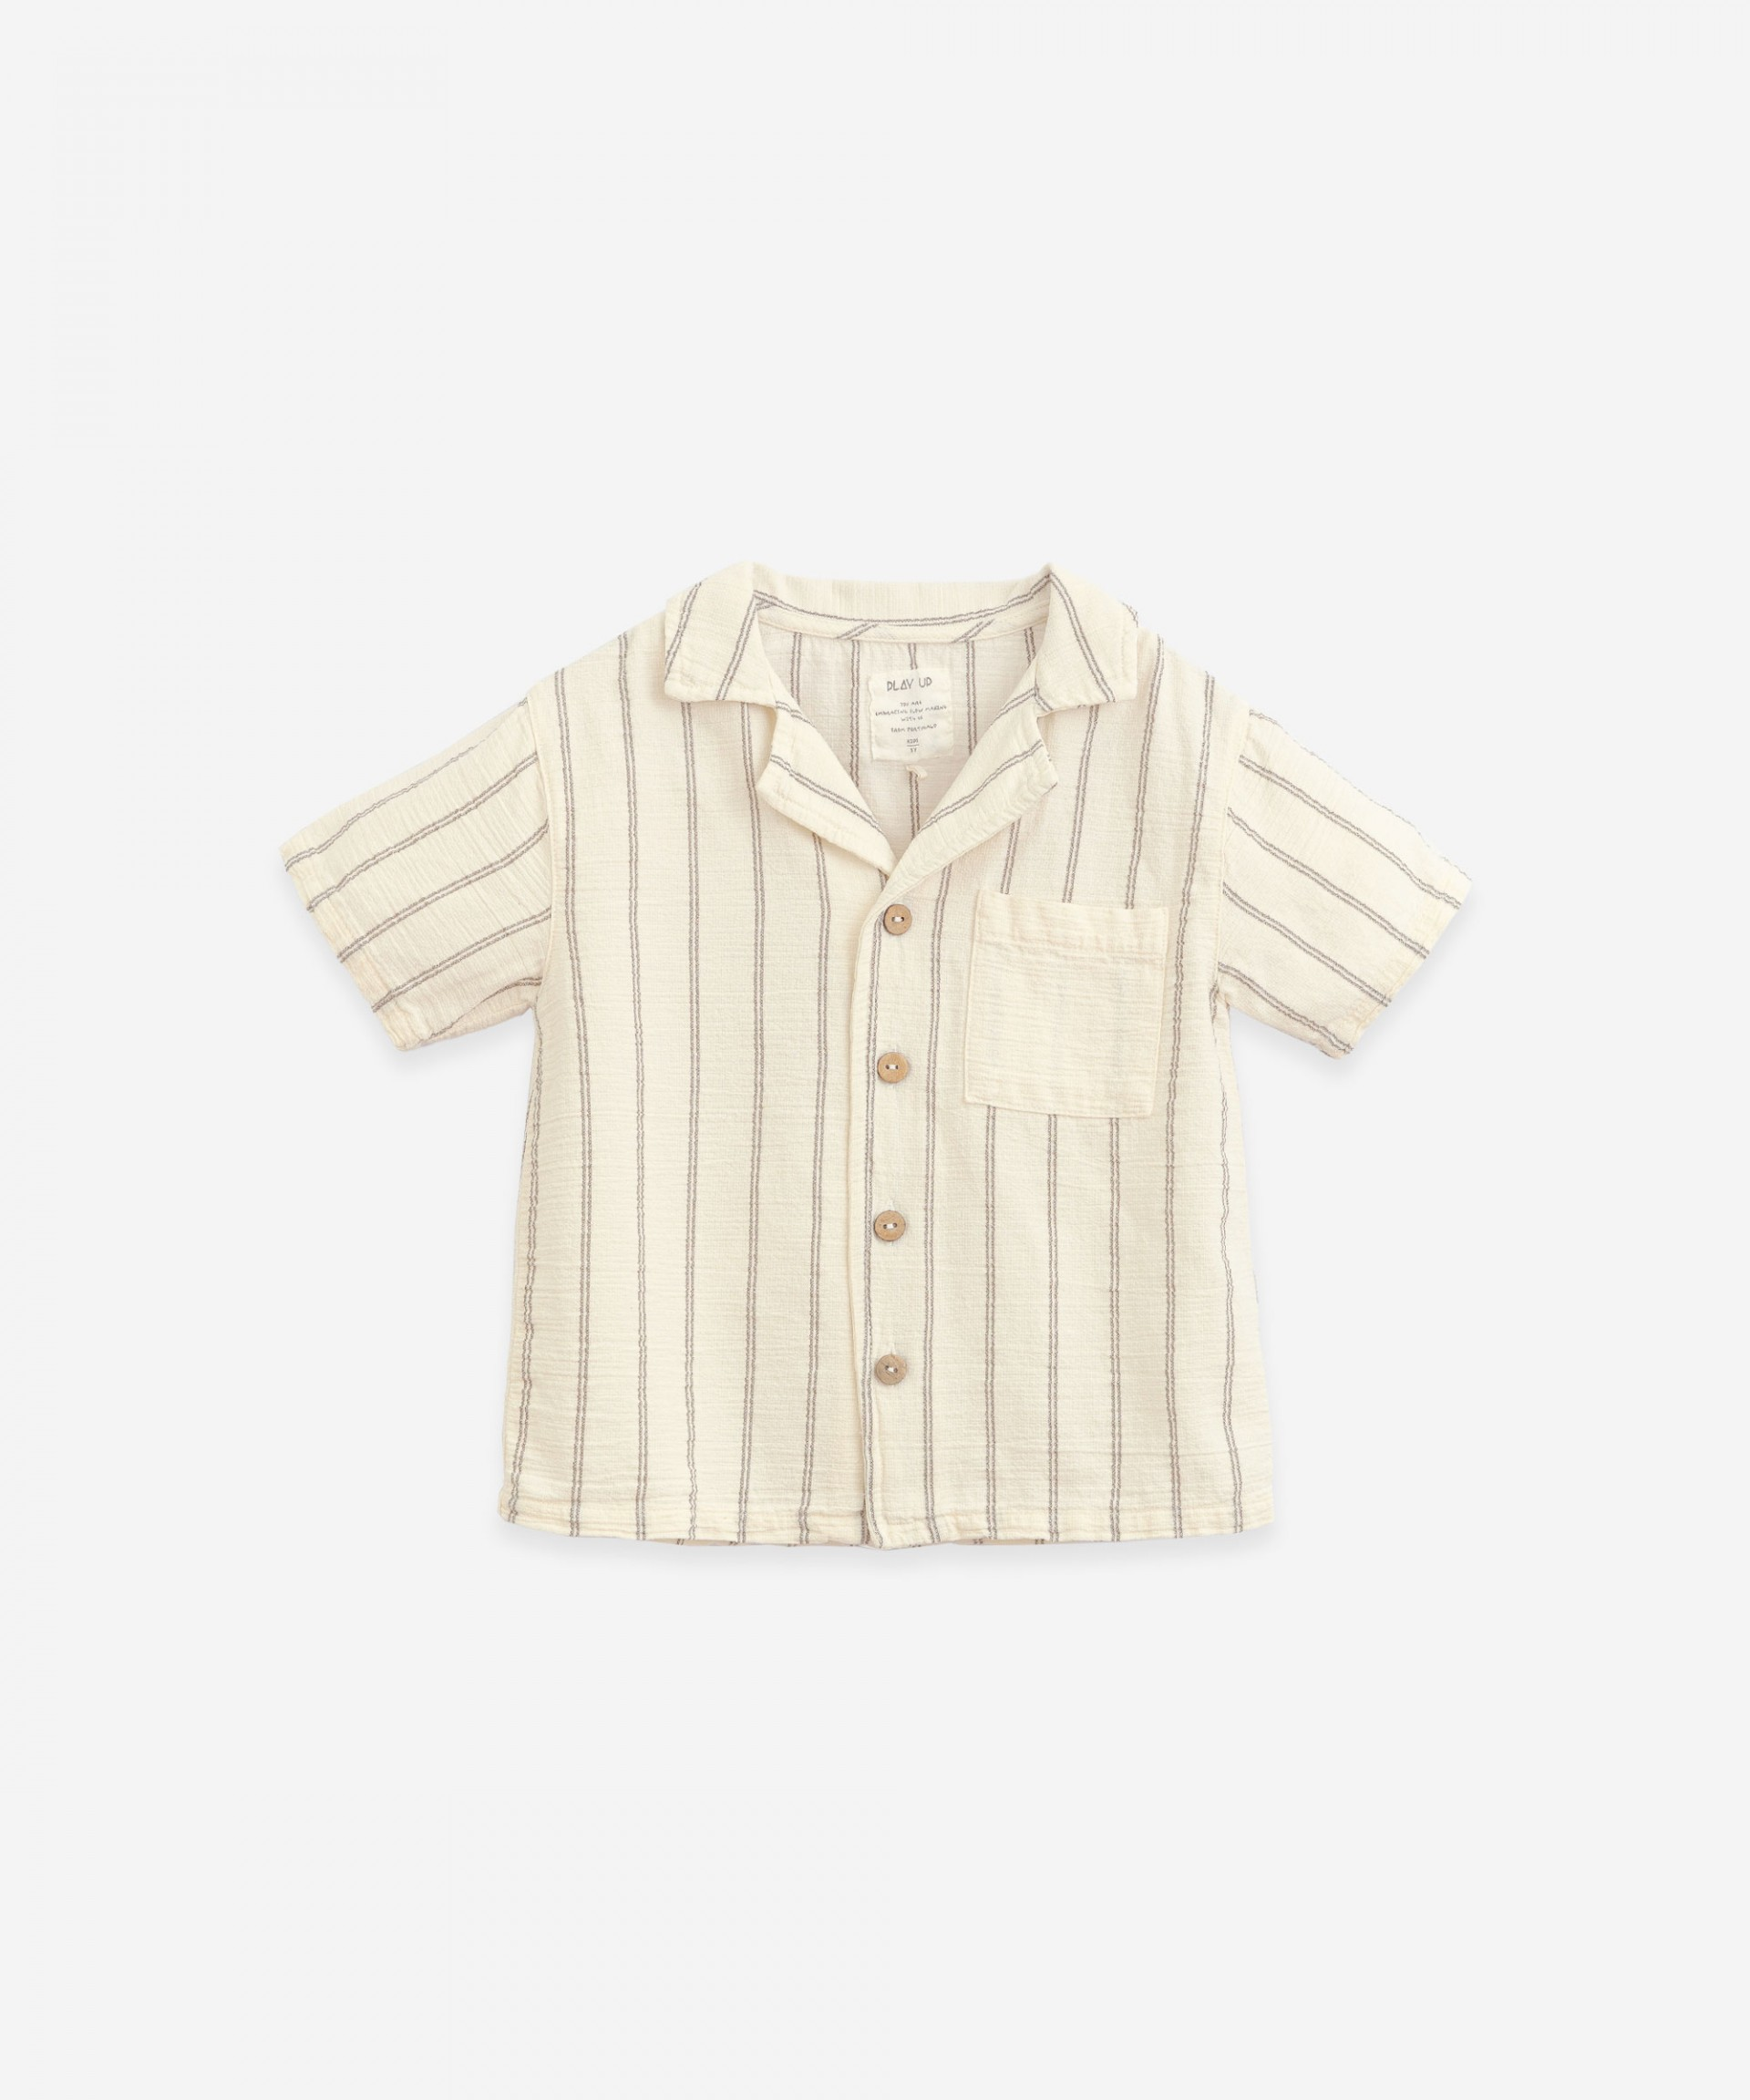 Striped shirt with pocket | Botany